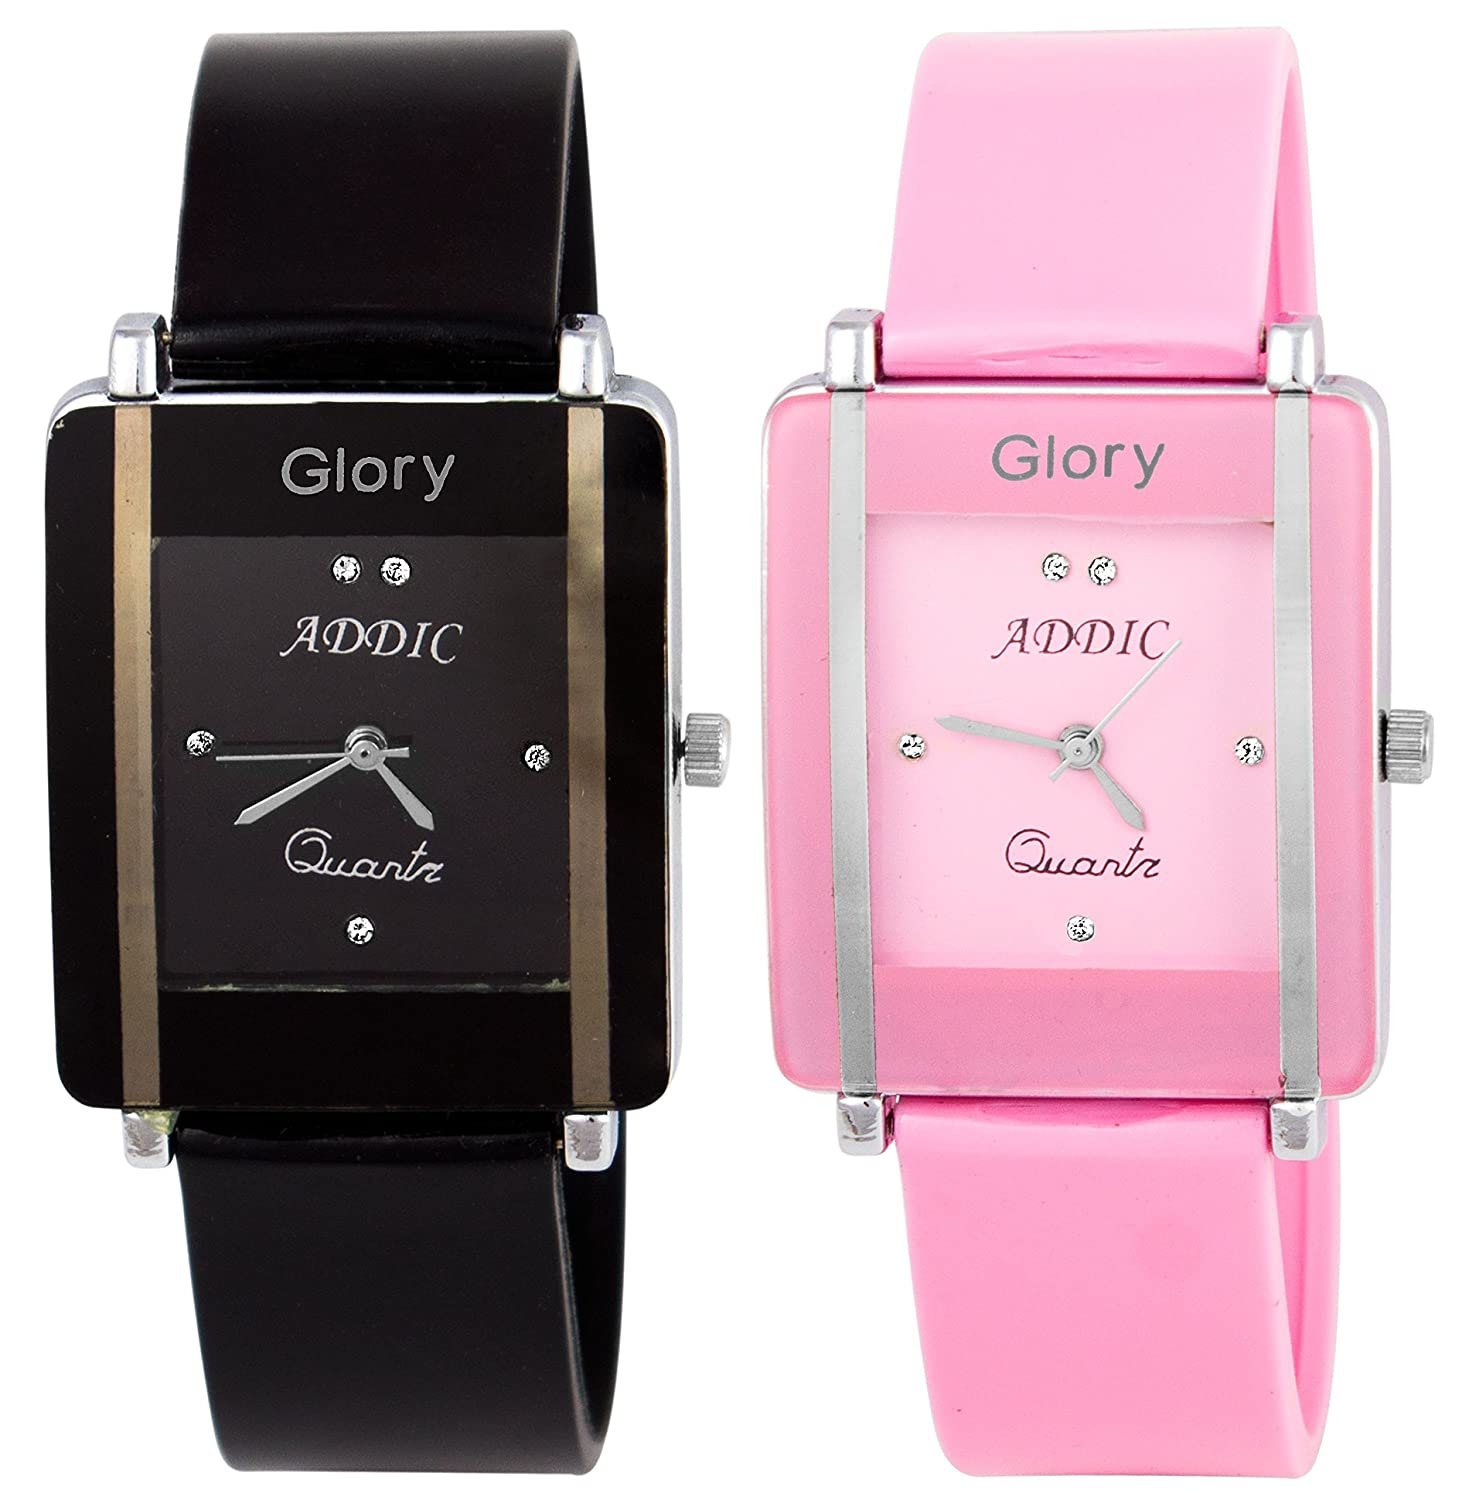 in dp s watch at prices india fogg buy women online analog amazon womens low dial t pink watches pk